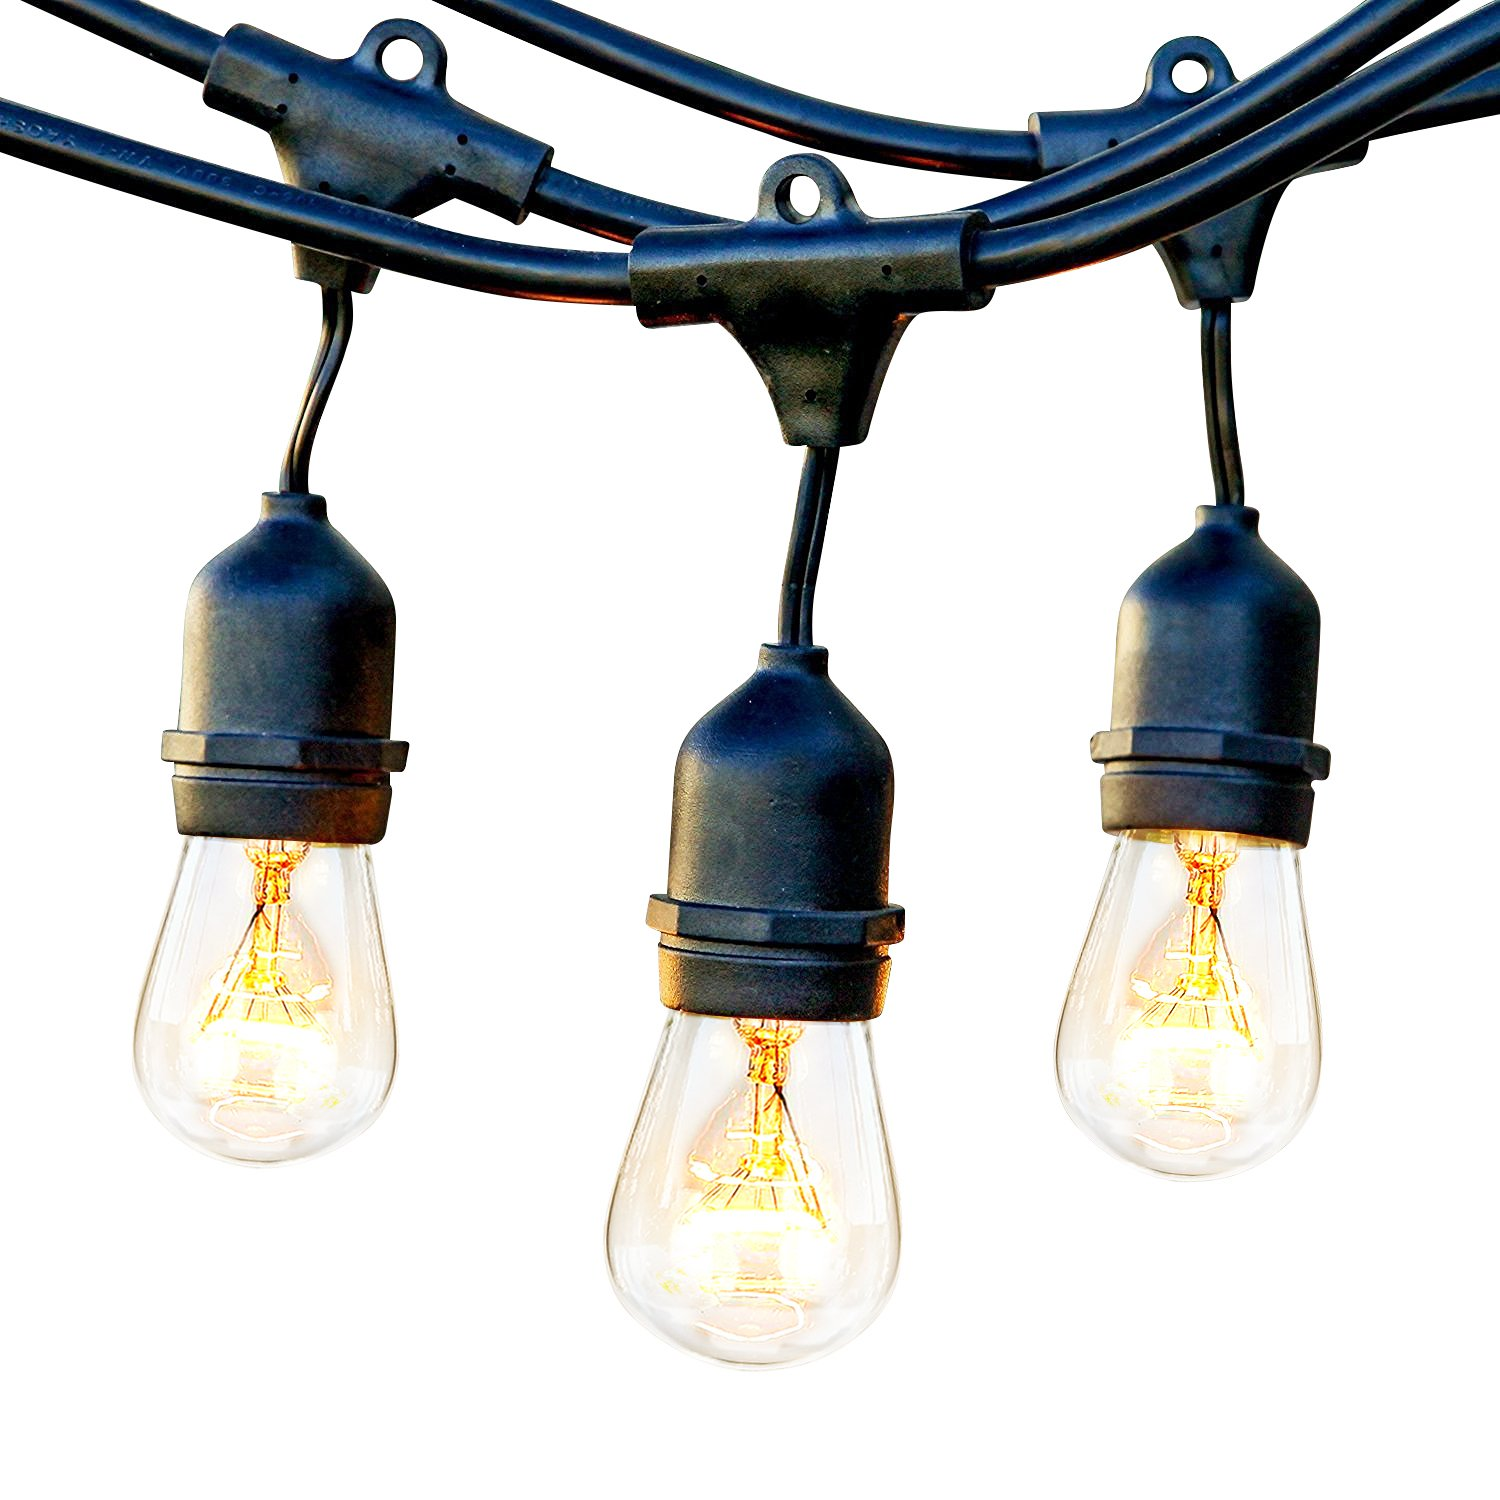 Brightech Ambience Pro Waterproof Outdoor String Lights with Vintage Hanging Edison Bulbs: 48 Ft Commercial Grade Patio/Gazebo Lights - Great For Cafe/Bistro Ambience In Your Garden – Black by Brightech